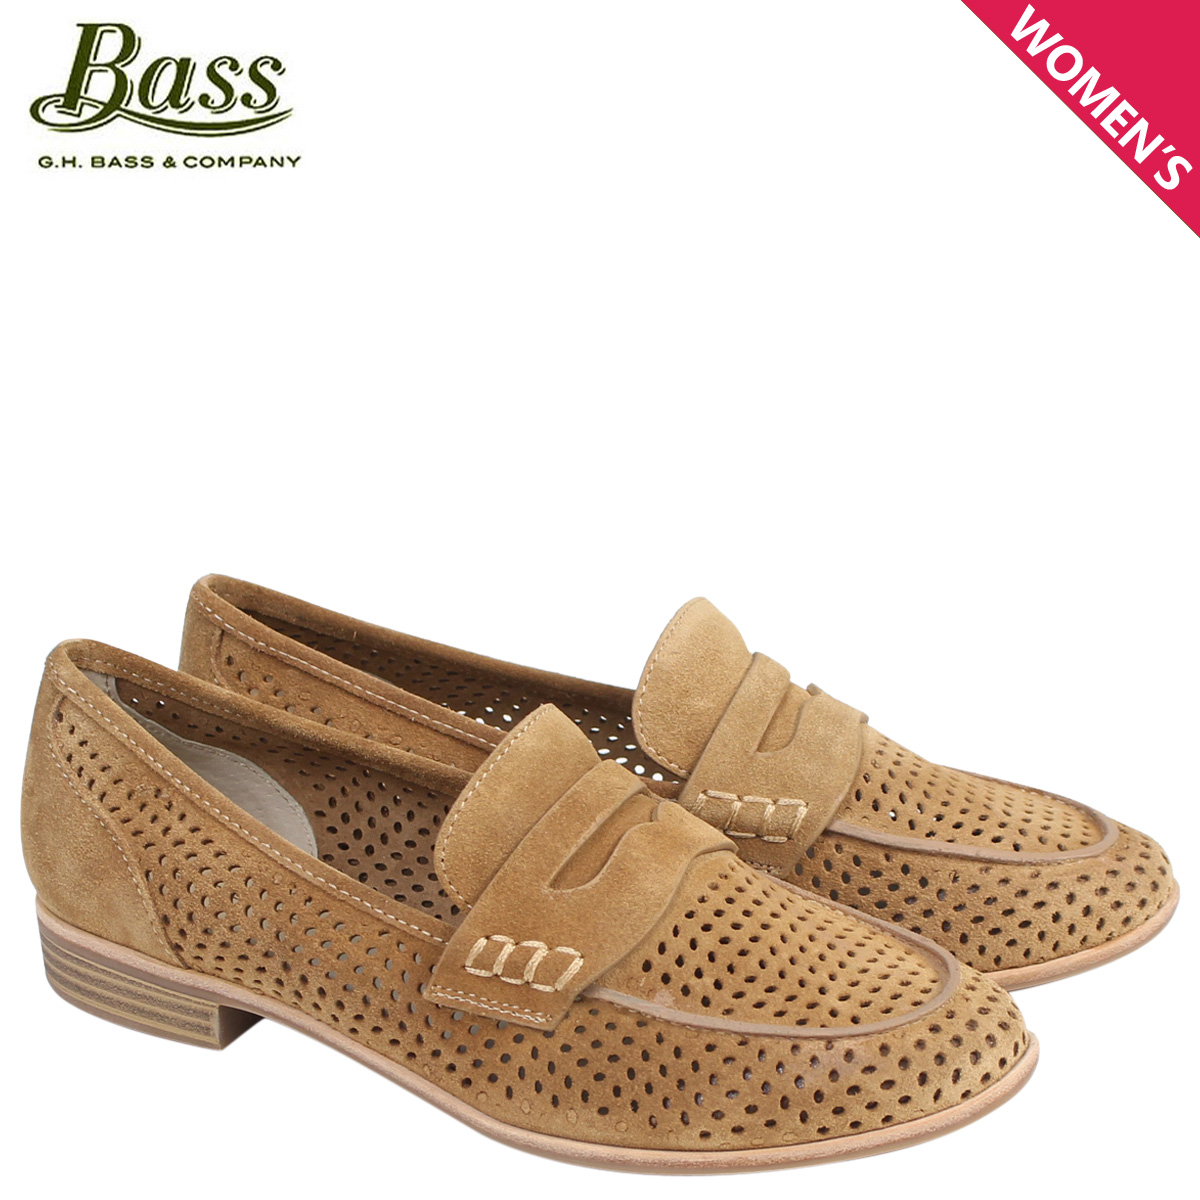 G H bus loafer G.H. BASS Lady's pumps penny ELLIE LOAFER 71-21,392 shoes  camel [177]